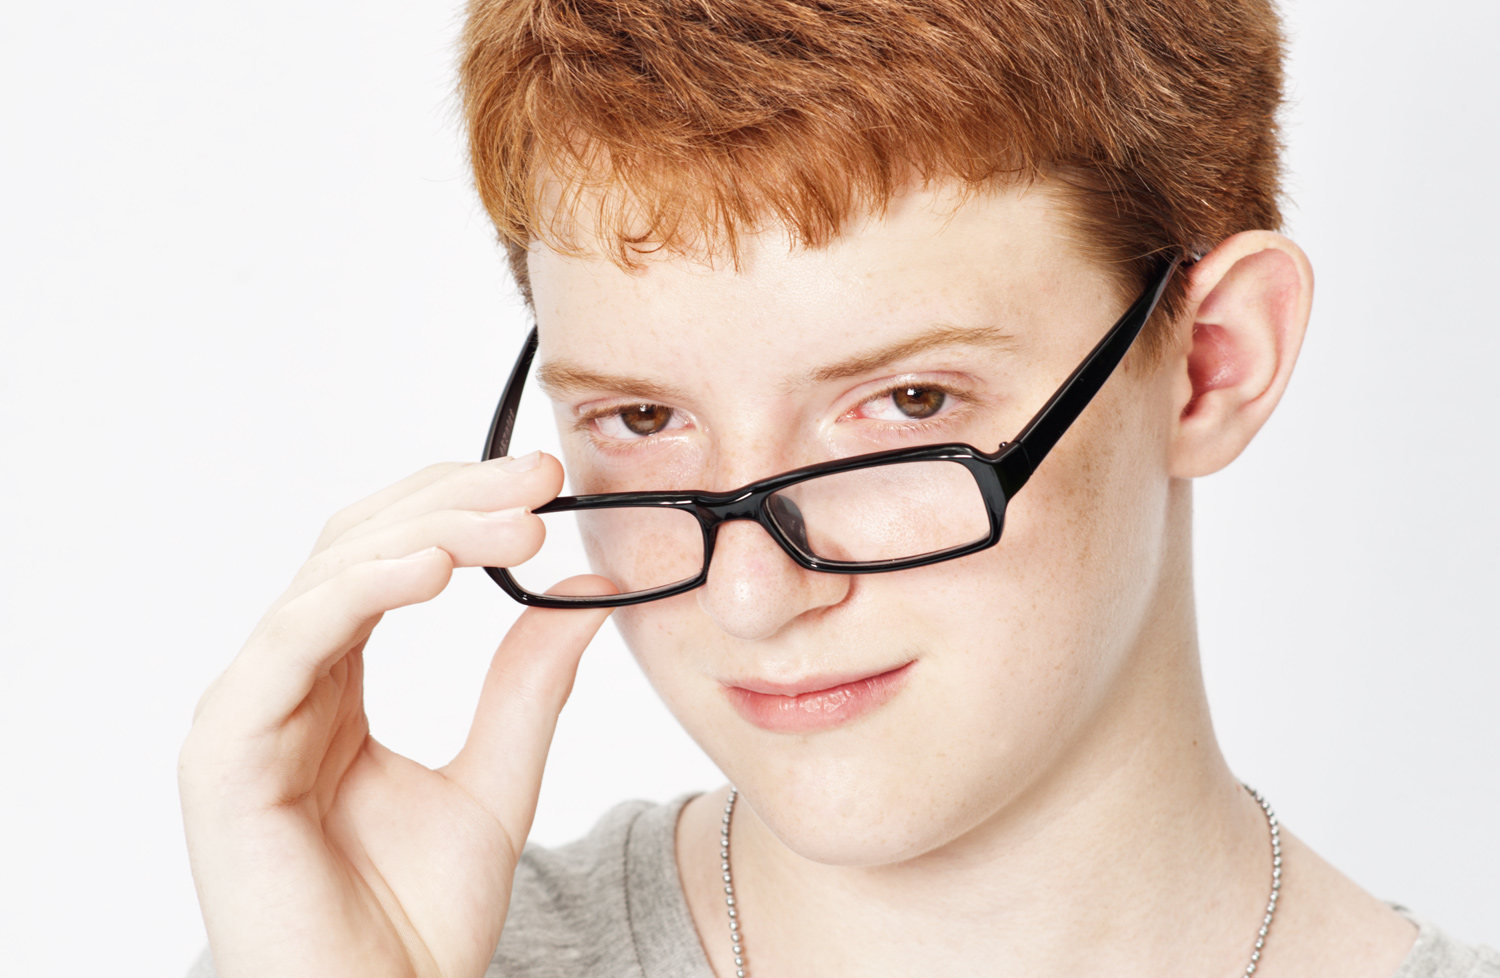 Boy with glasses - Viewfinder Image Blurry? You May Need to Adjust Your Camera's Diopter - Here's How